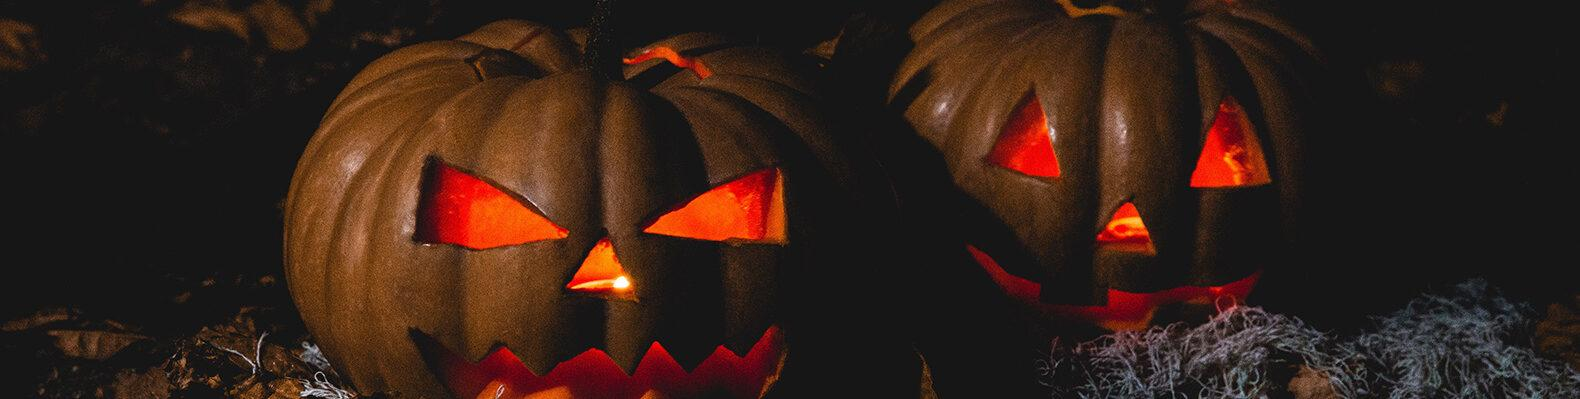 two jack-o-lanterns lit up in a dark setting